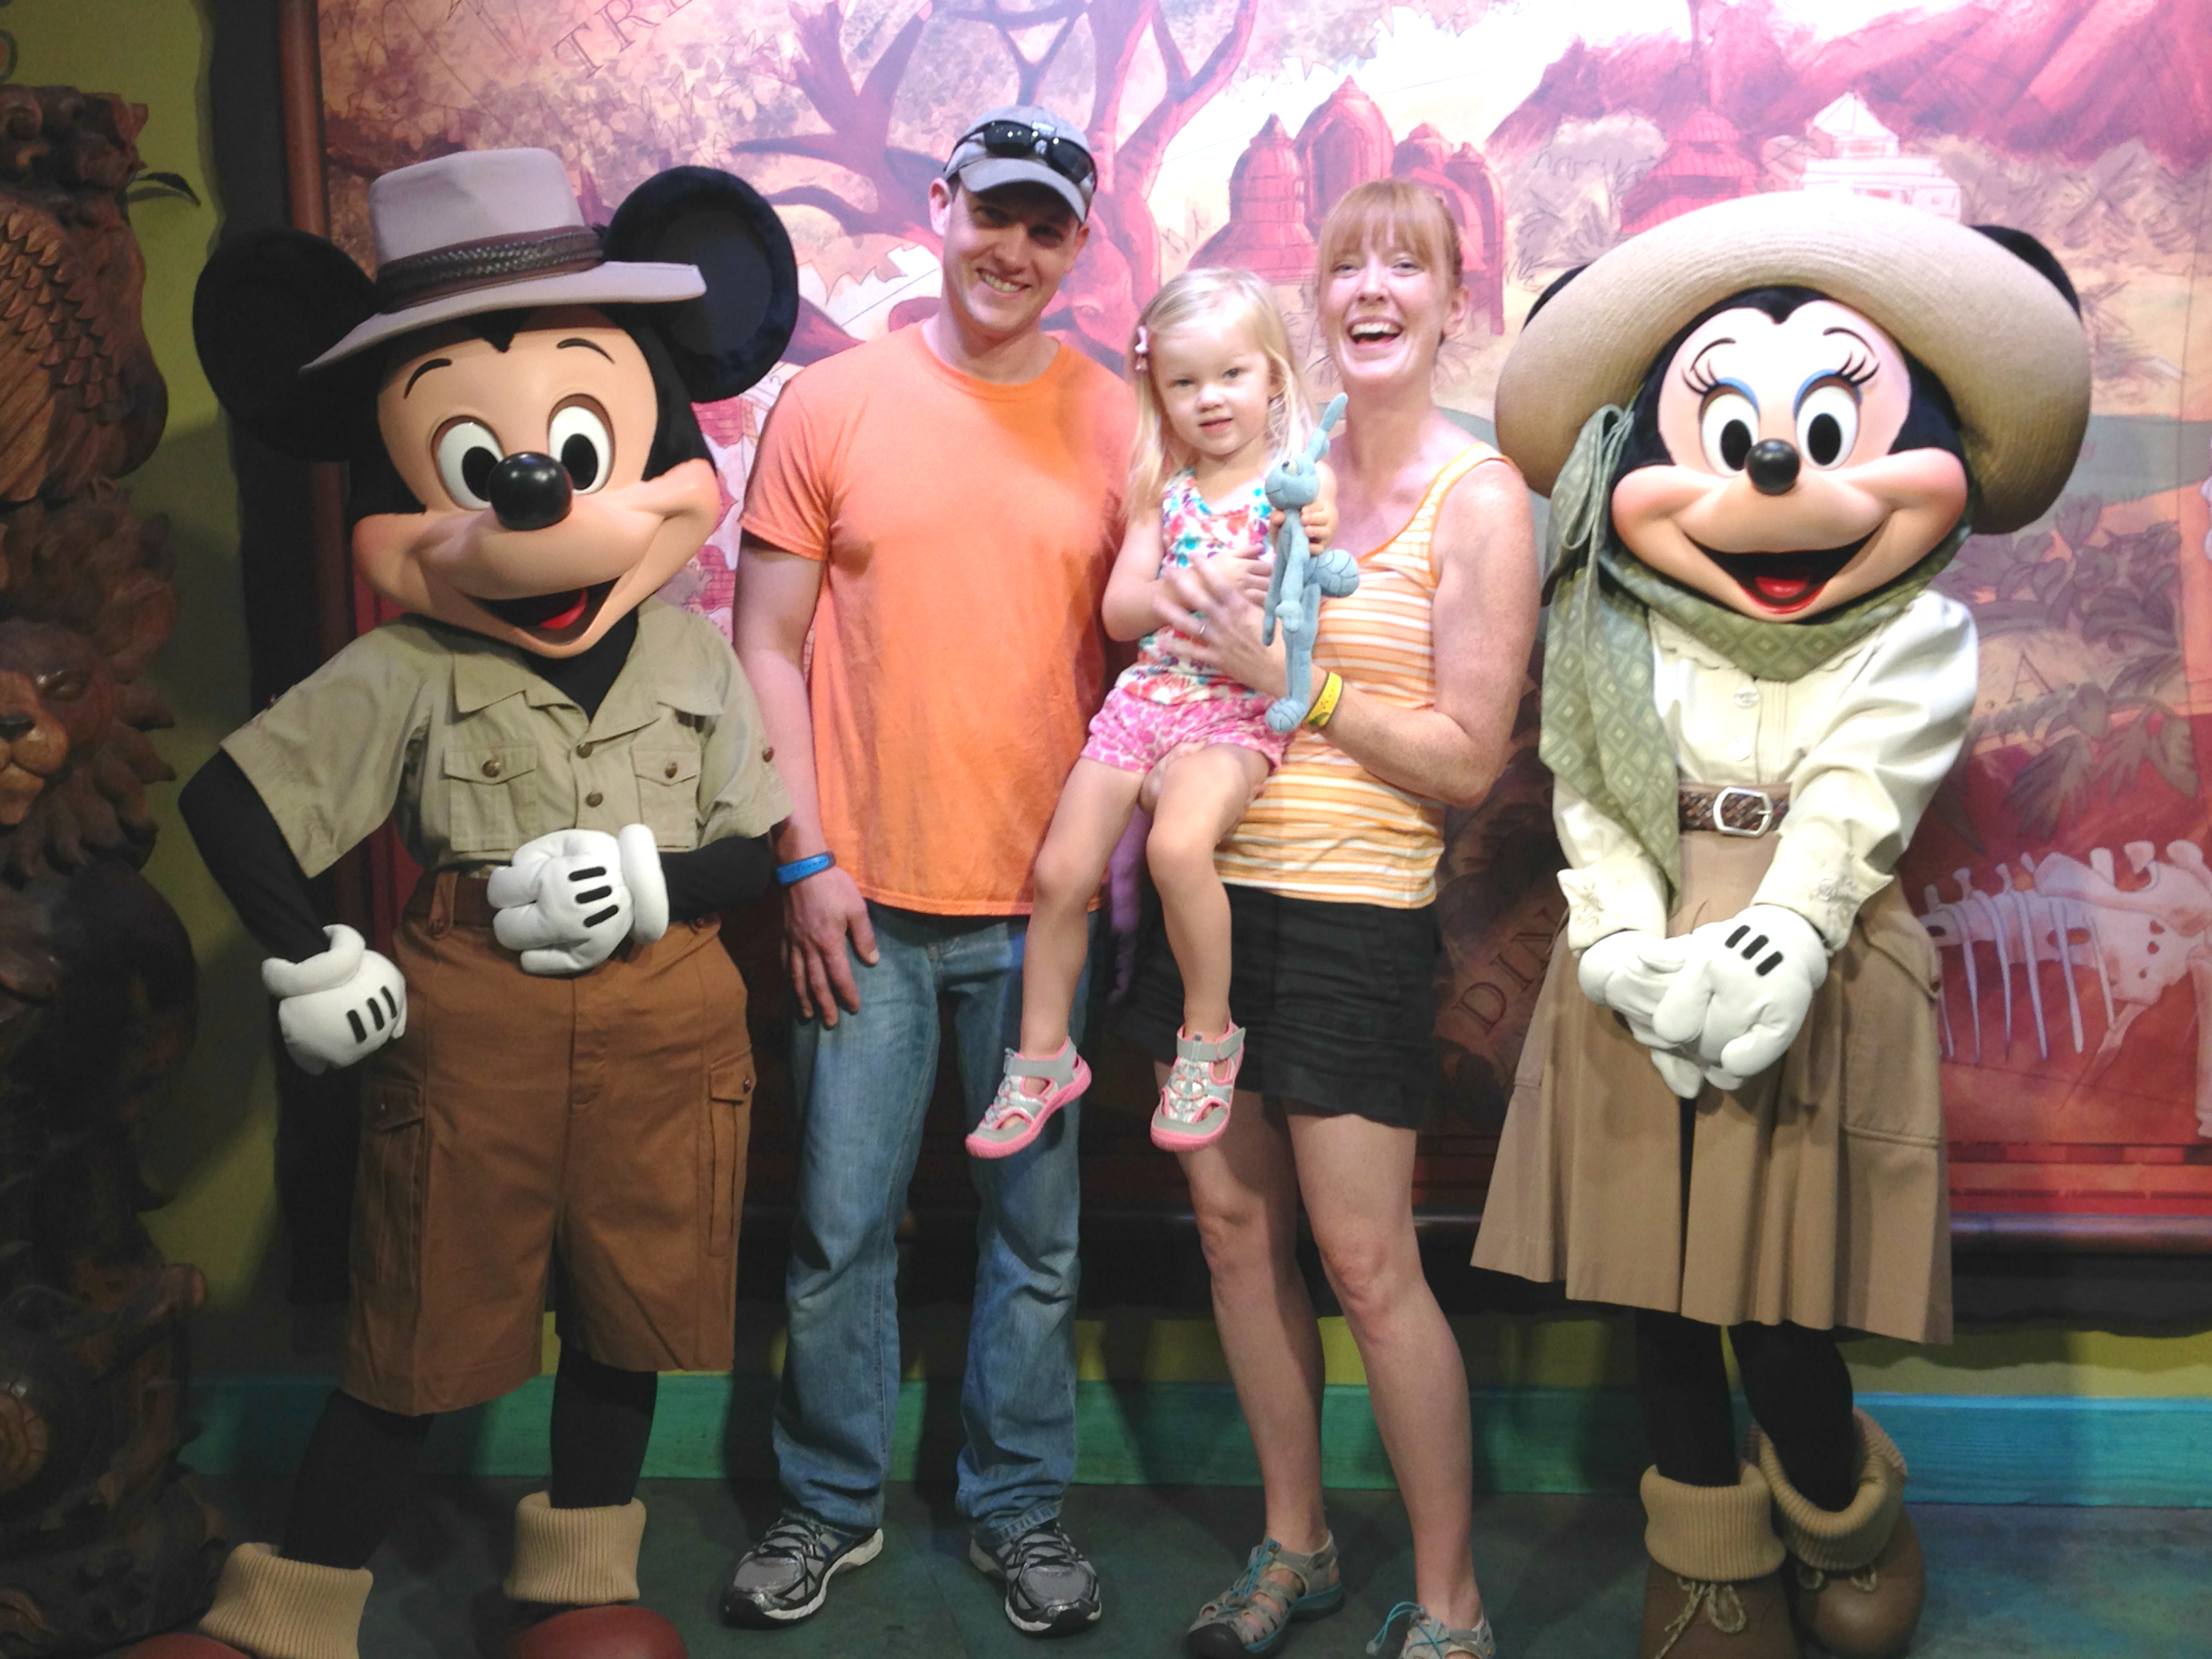 family posing with disney characters mickey and minnie in safari outfits